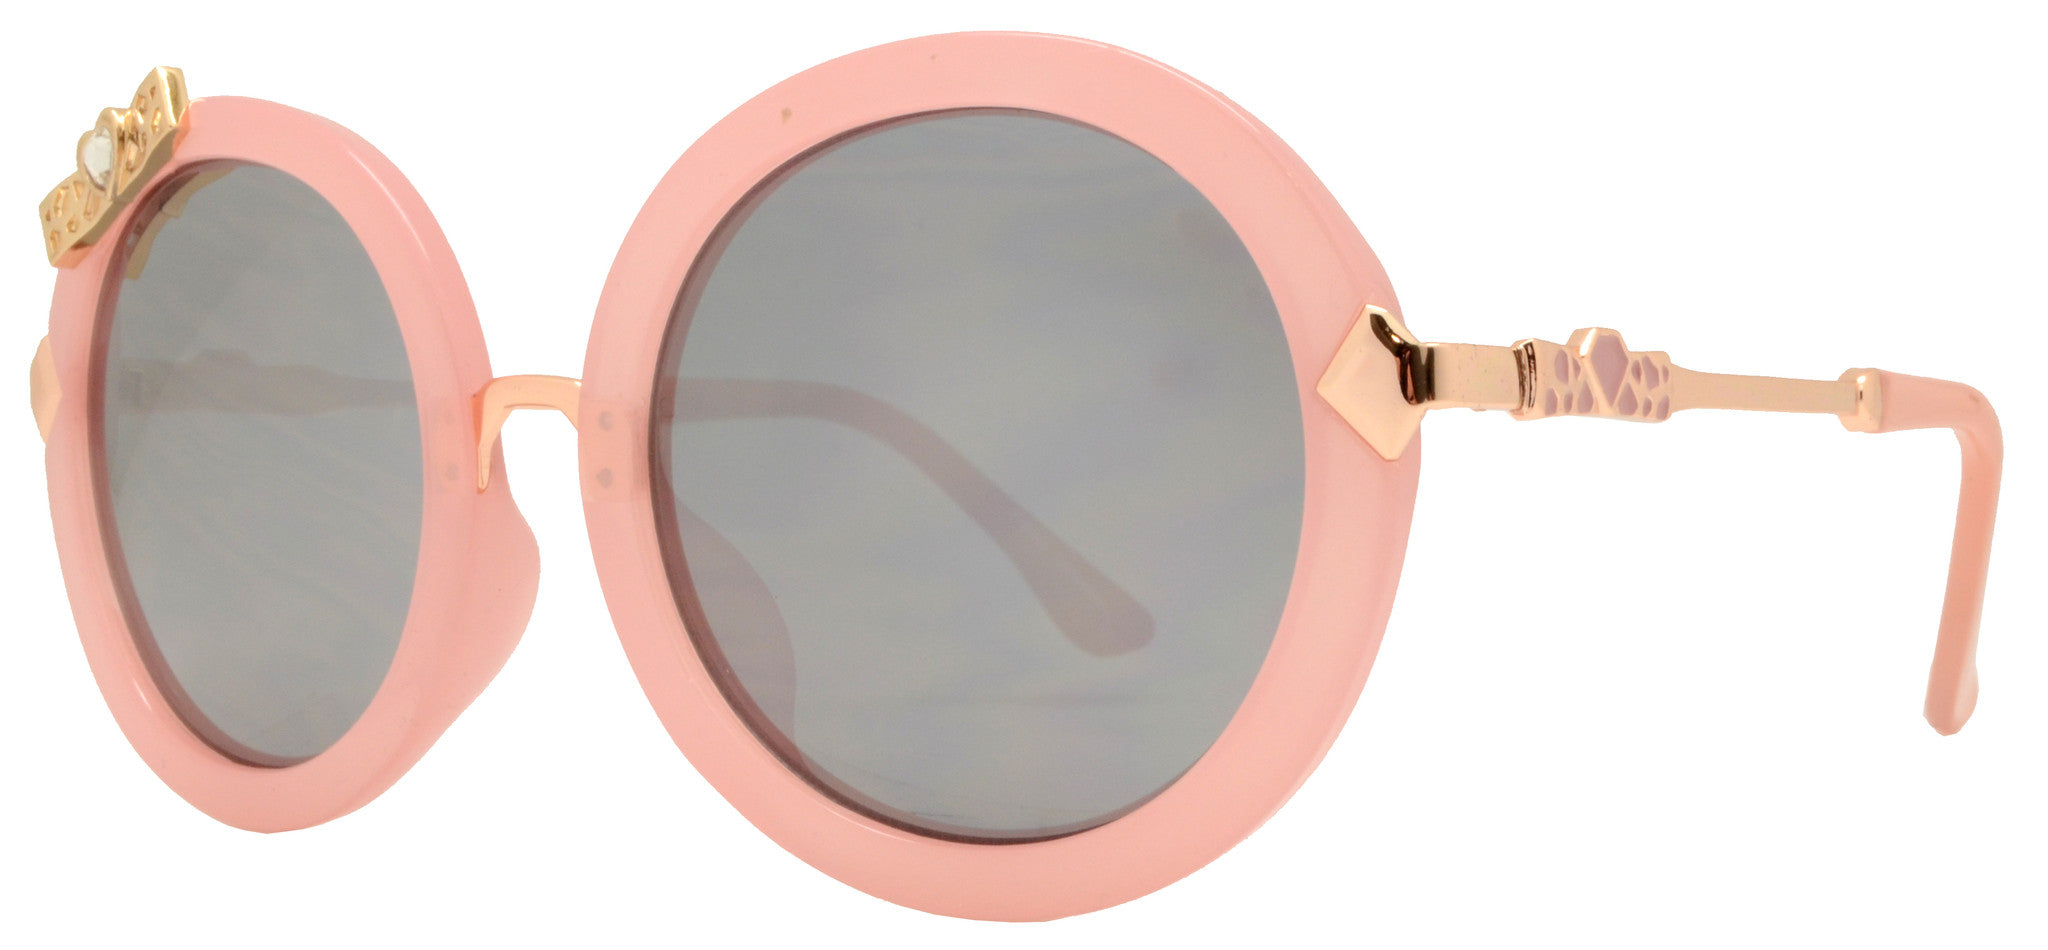 Dynasol Eyewear - Wholesale Sunglasses - FC 6269 - Round Bow Accent Women Plastic Sunglasses - sunglasses